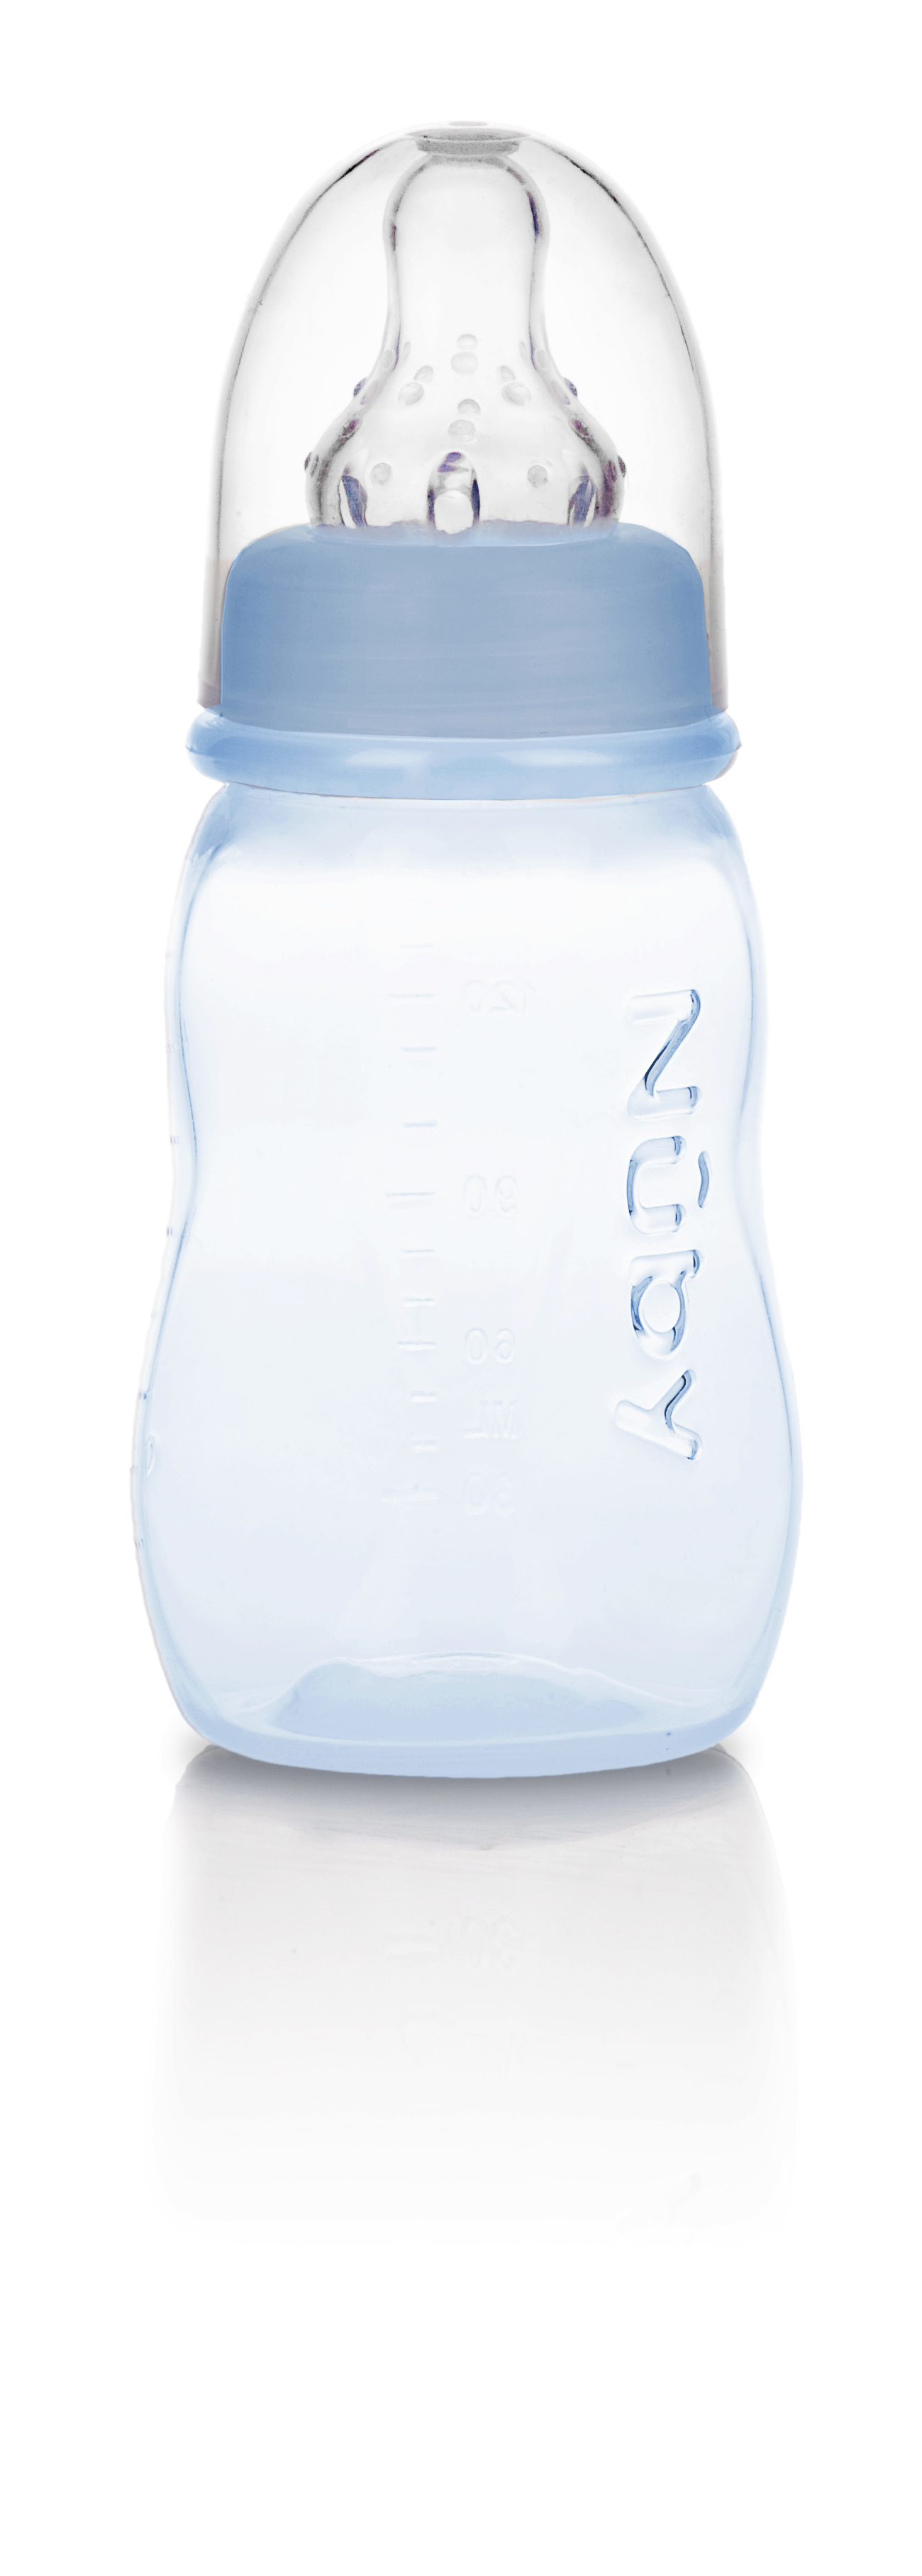 120ml Conventional Bottle